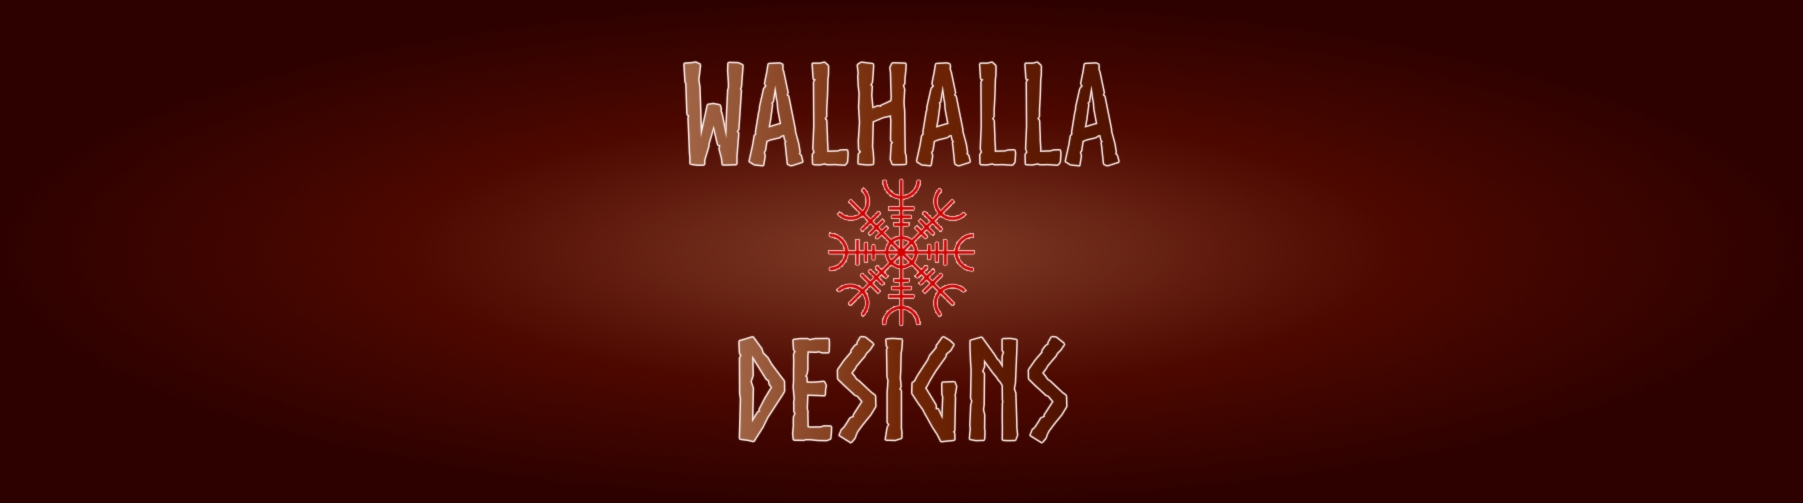 Showroom - Walhalla-Designs